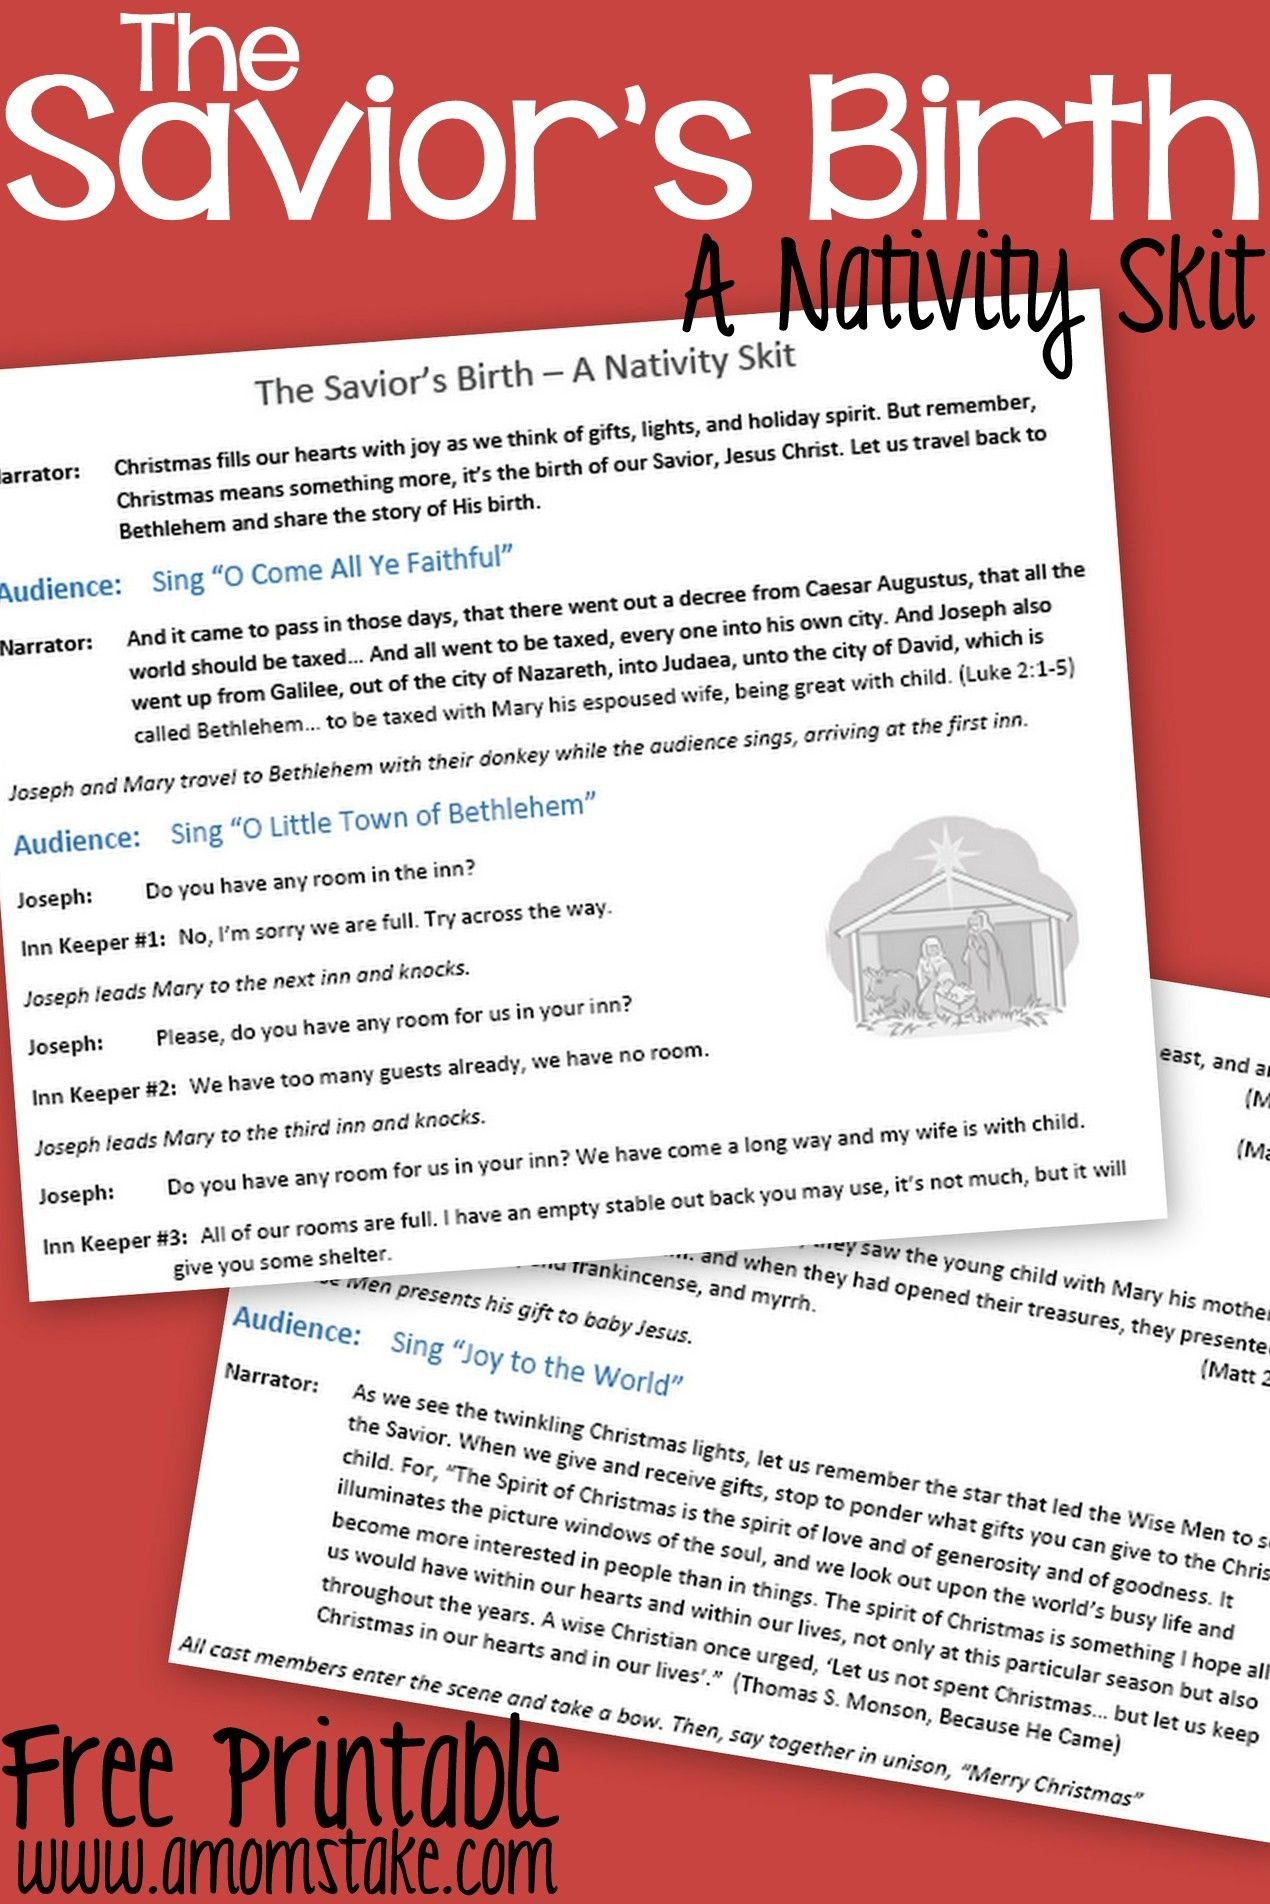 Free Printable Nativity Skit To Act Out The Birth Of The Savior - Free Printable Christmas Plays Church